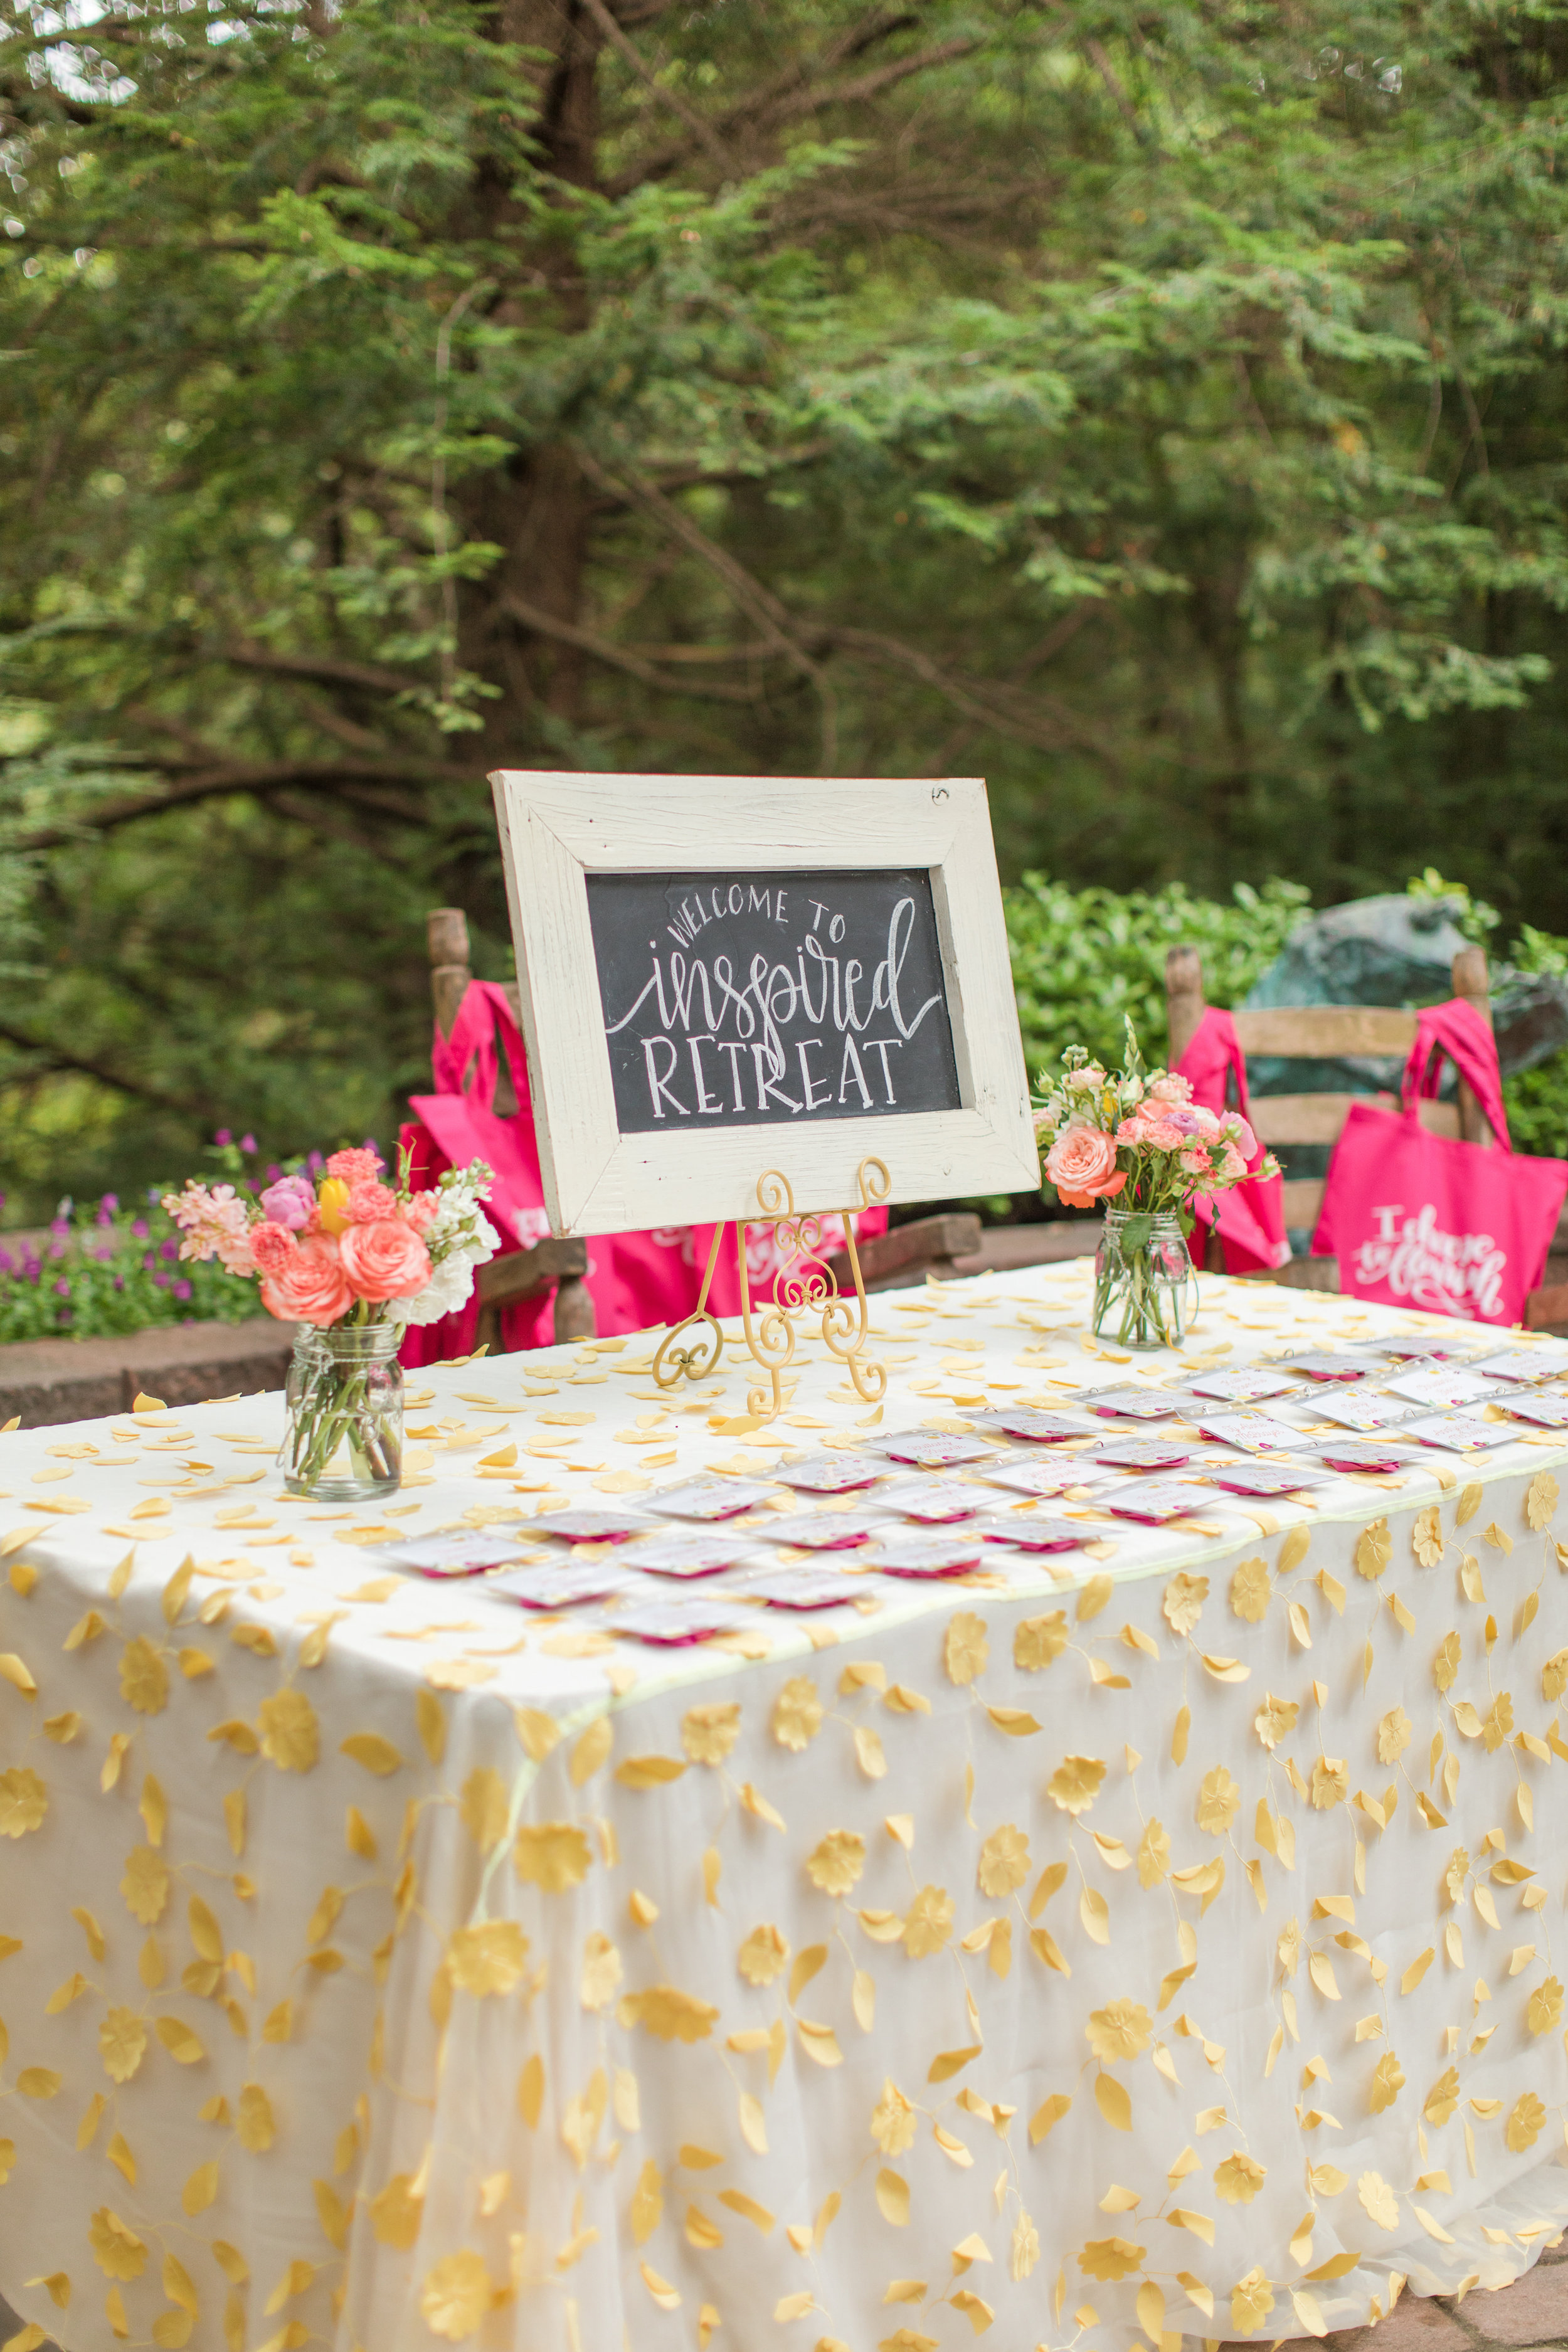 Inspired Retreat - Amber Housley- Anna Filly Photography - Conference for creative businesses - Day One-41.jpg